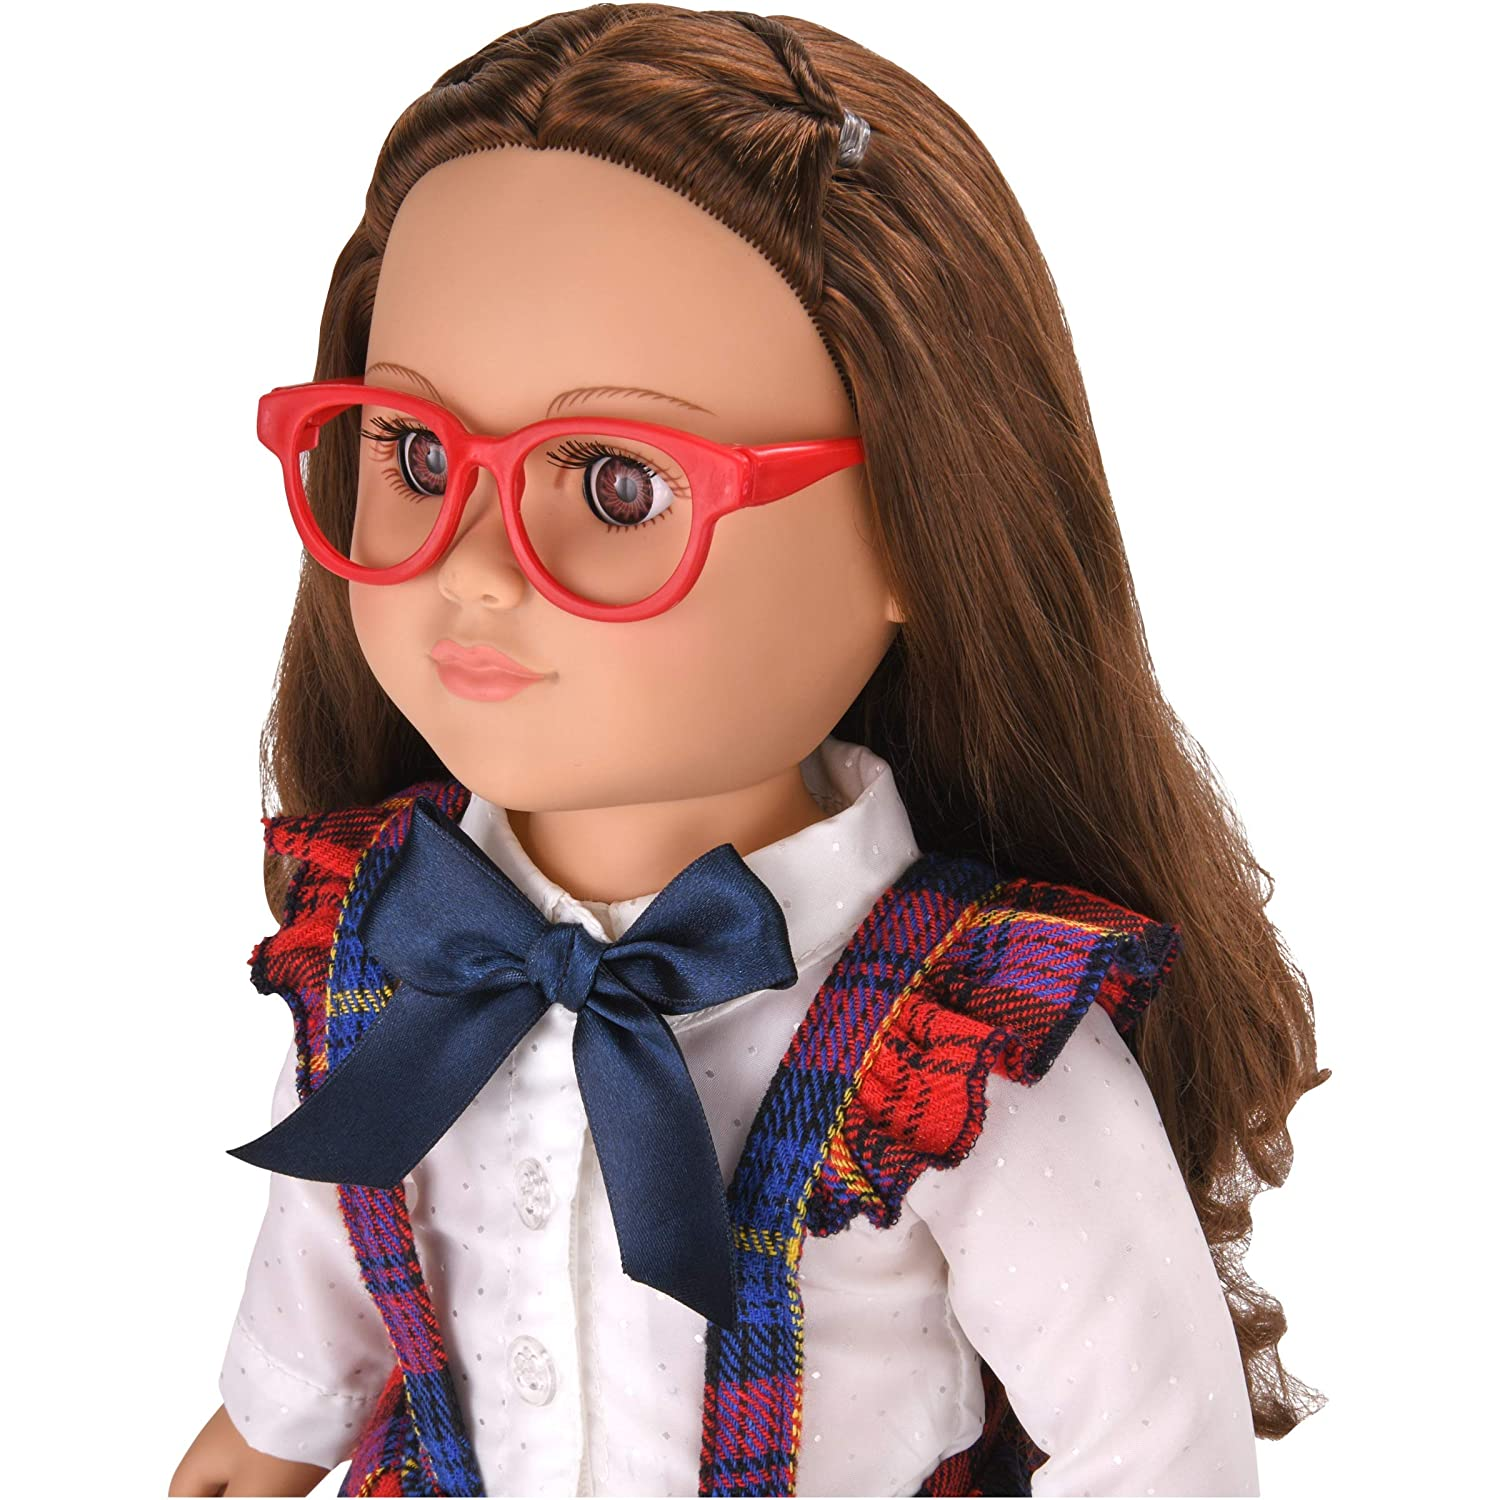 myLife Brand Products My Life As Poseable School Girl Doll Brunette